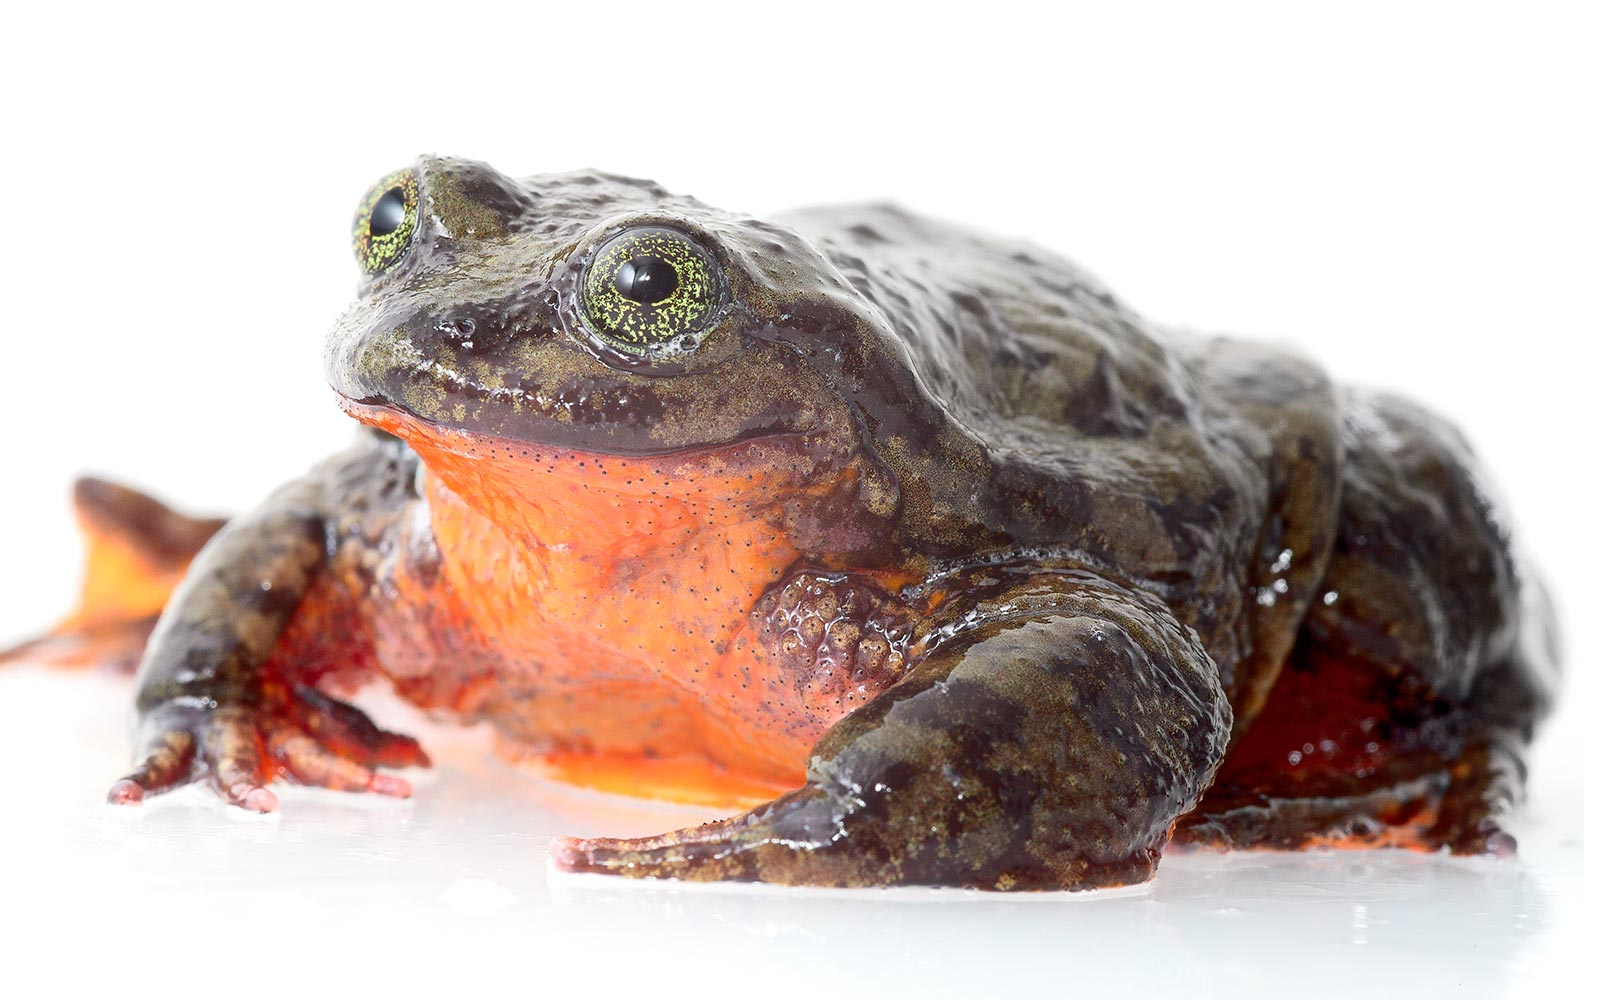 Help Romeo, the World's Loneliest Frog, Find His Juliet by Valentine's Day